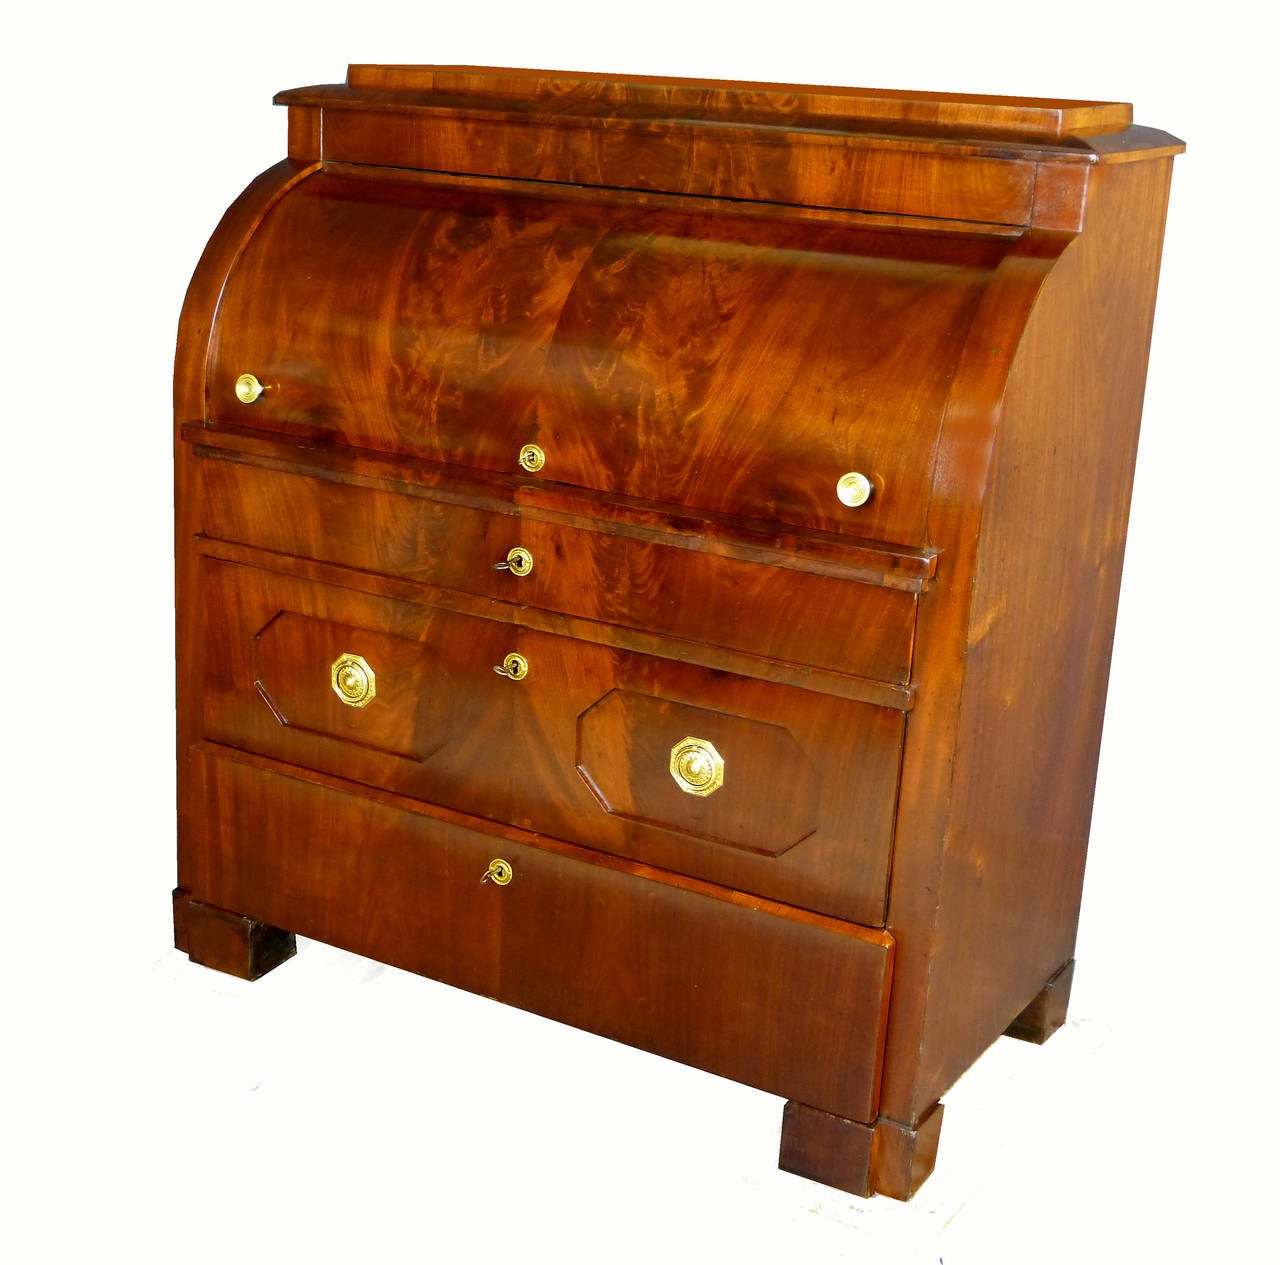 Bureau Secretaire Of Biedermeier Cylinder Top Bureau Secretaire At 1stdibs